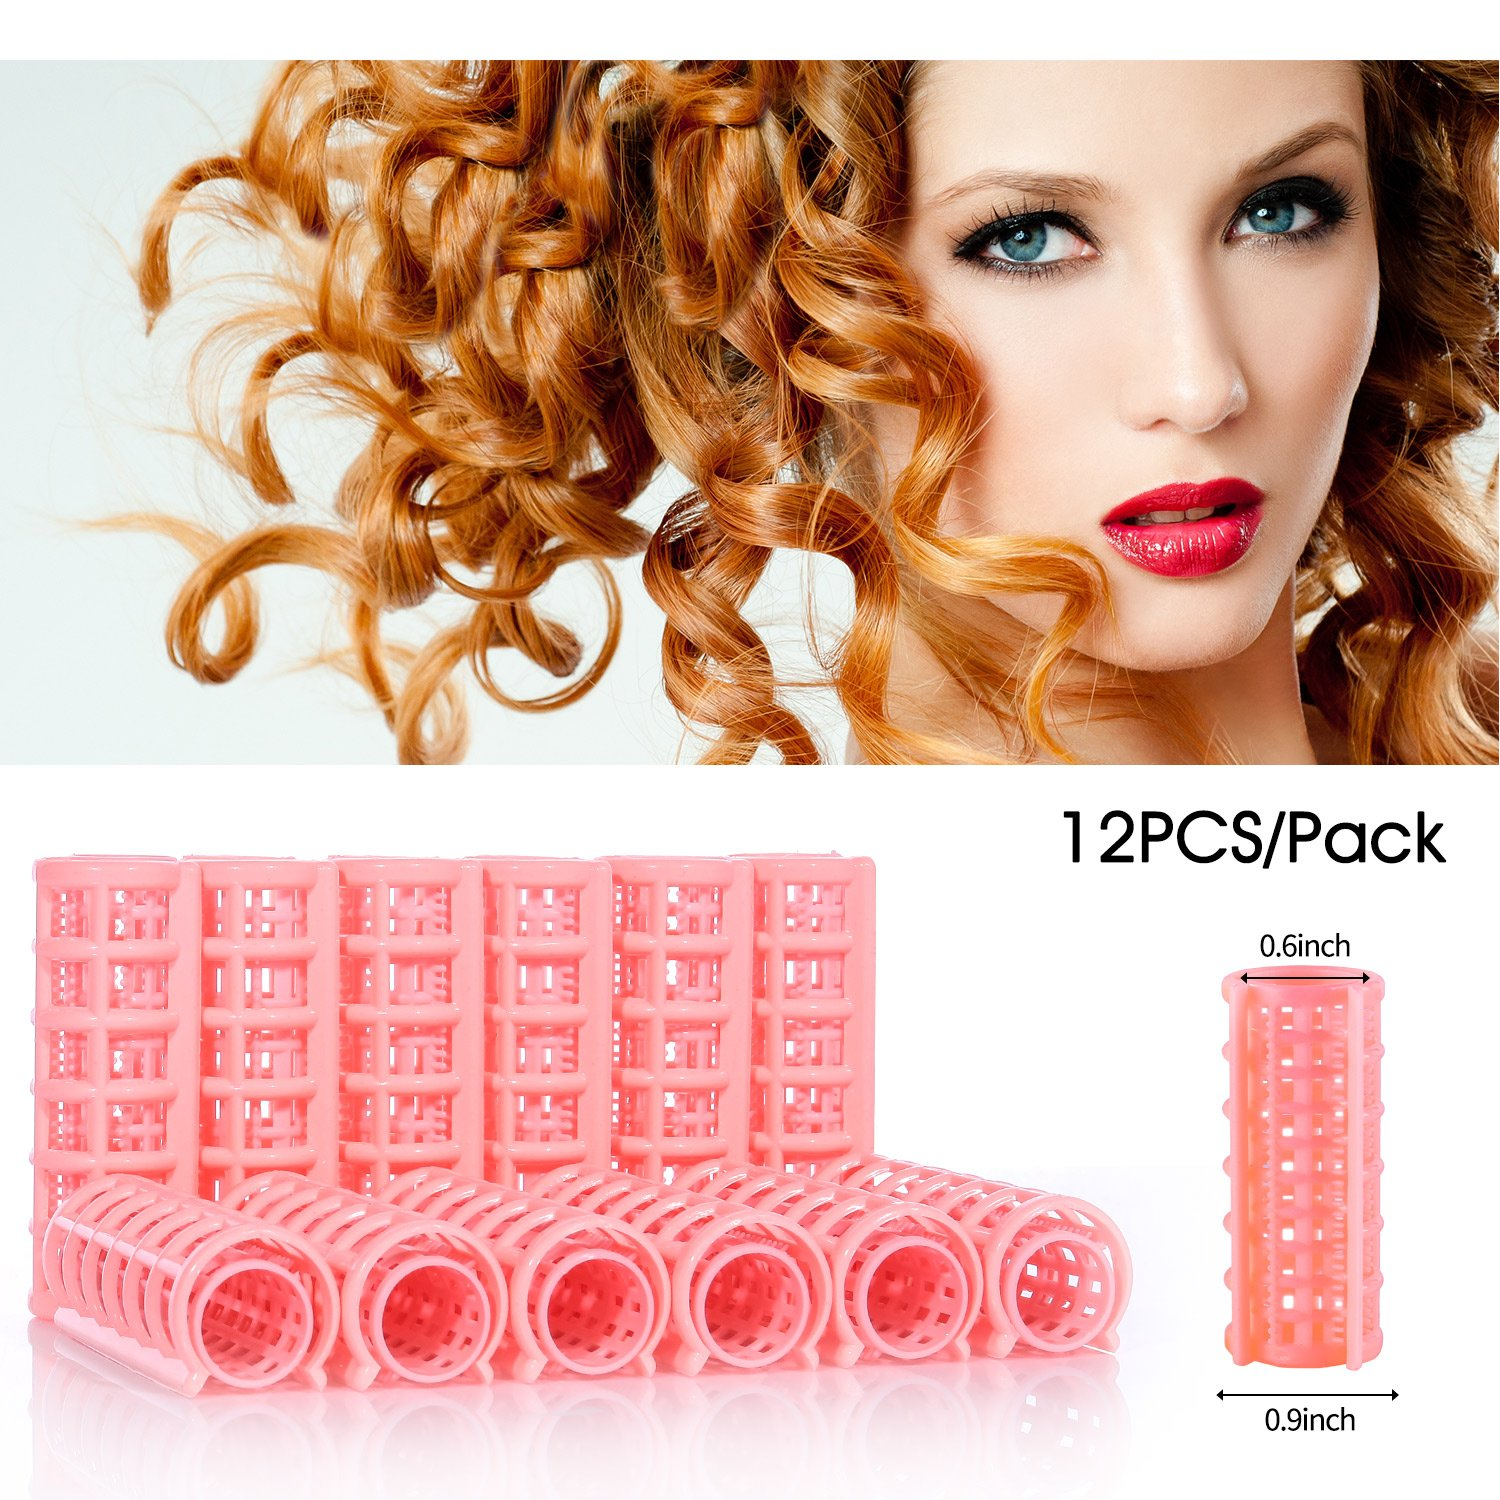 Yousha 12Pcs Self-grip Plastic Hair Rollers Pro Salon Hair Styling Curlers Clips for Women Ladies (20 x70 mm, Pink)